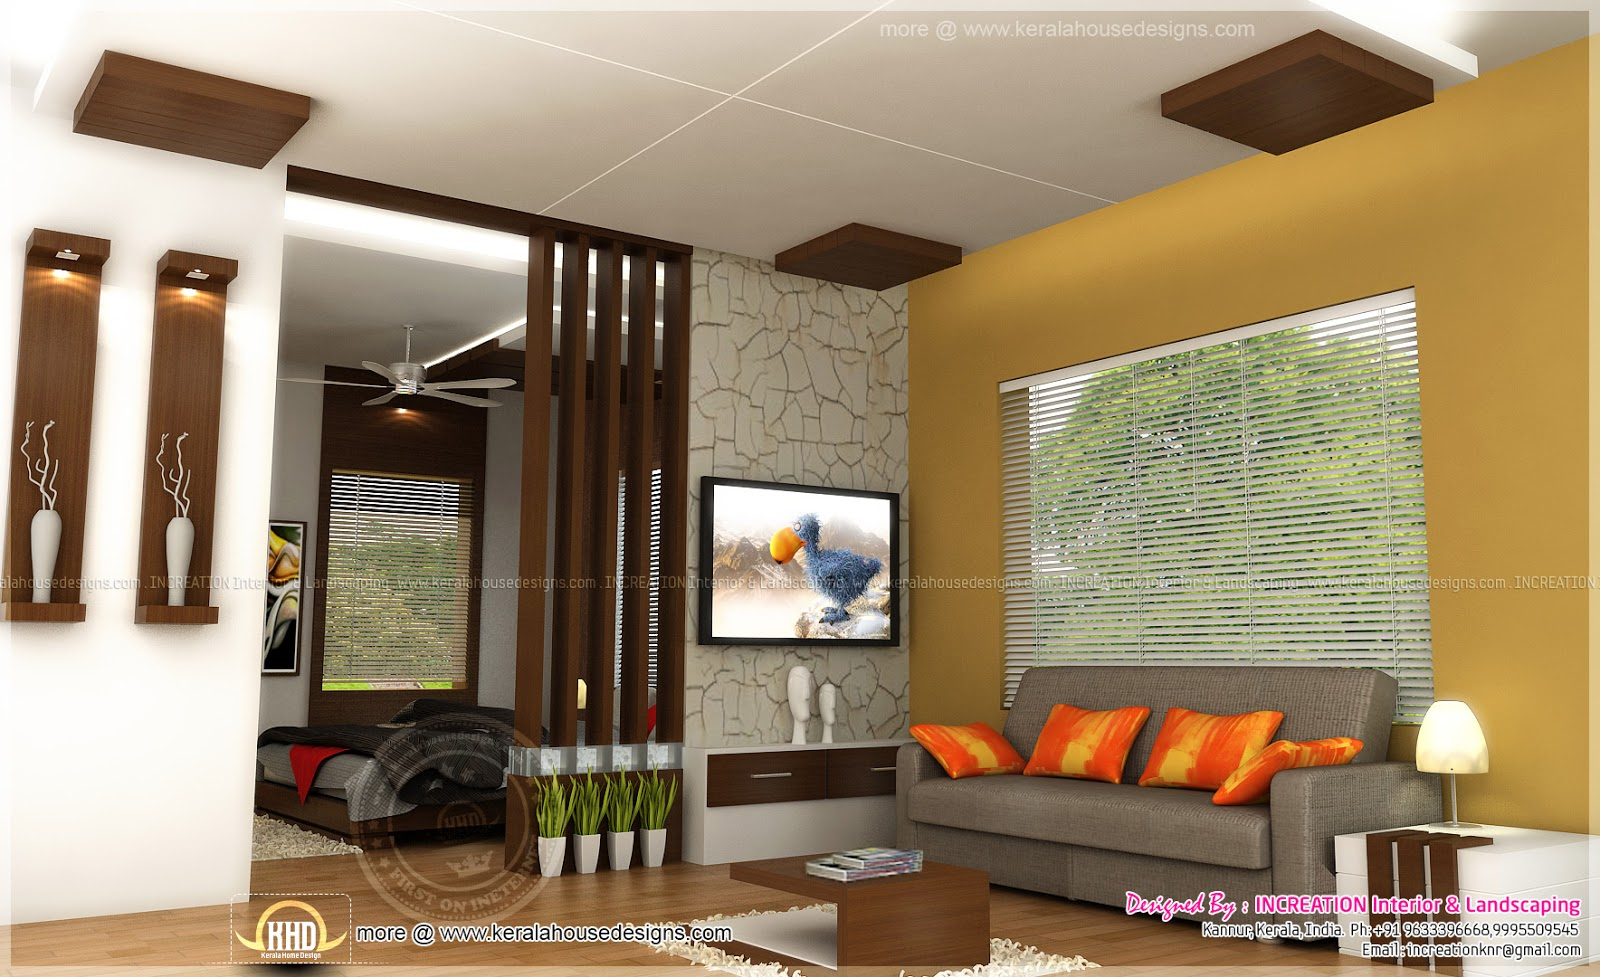 Interior designs from kannur kerala home kerala plans for Drawing room designs interior